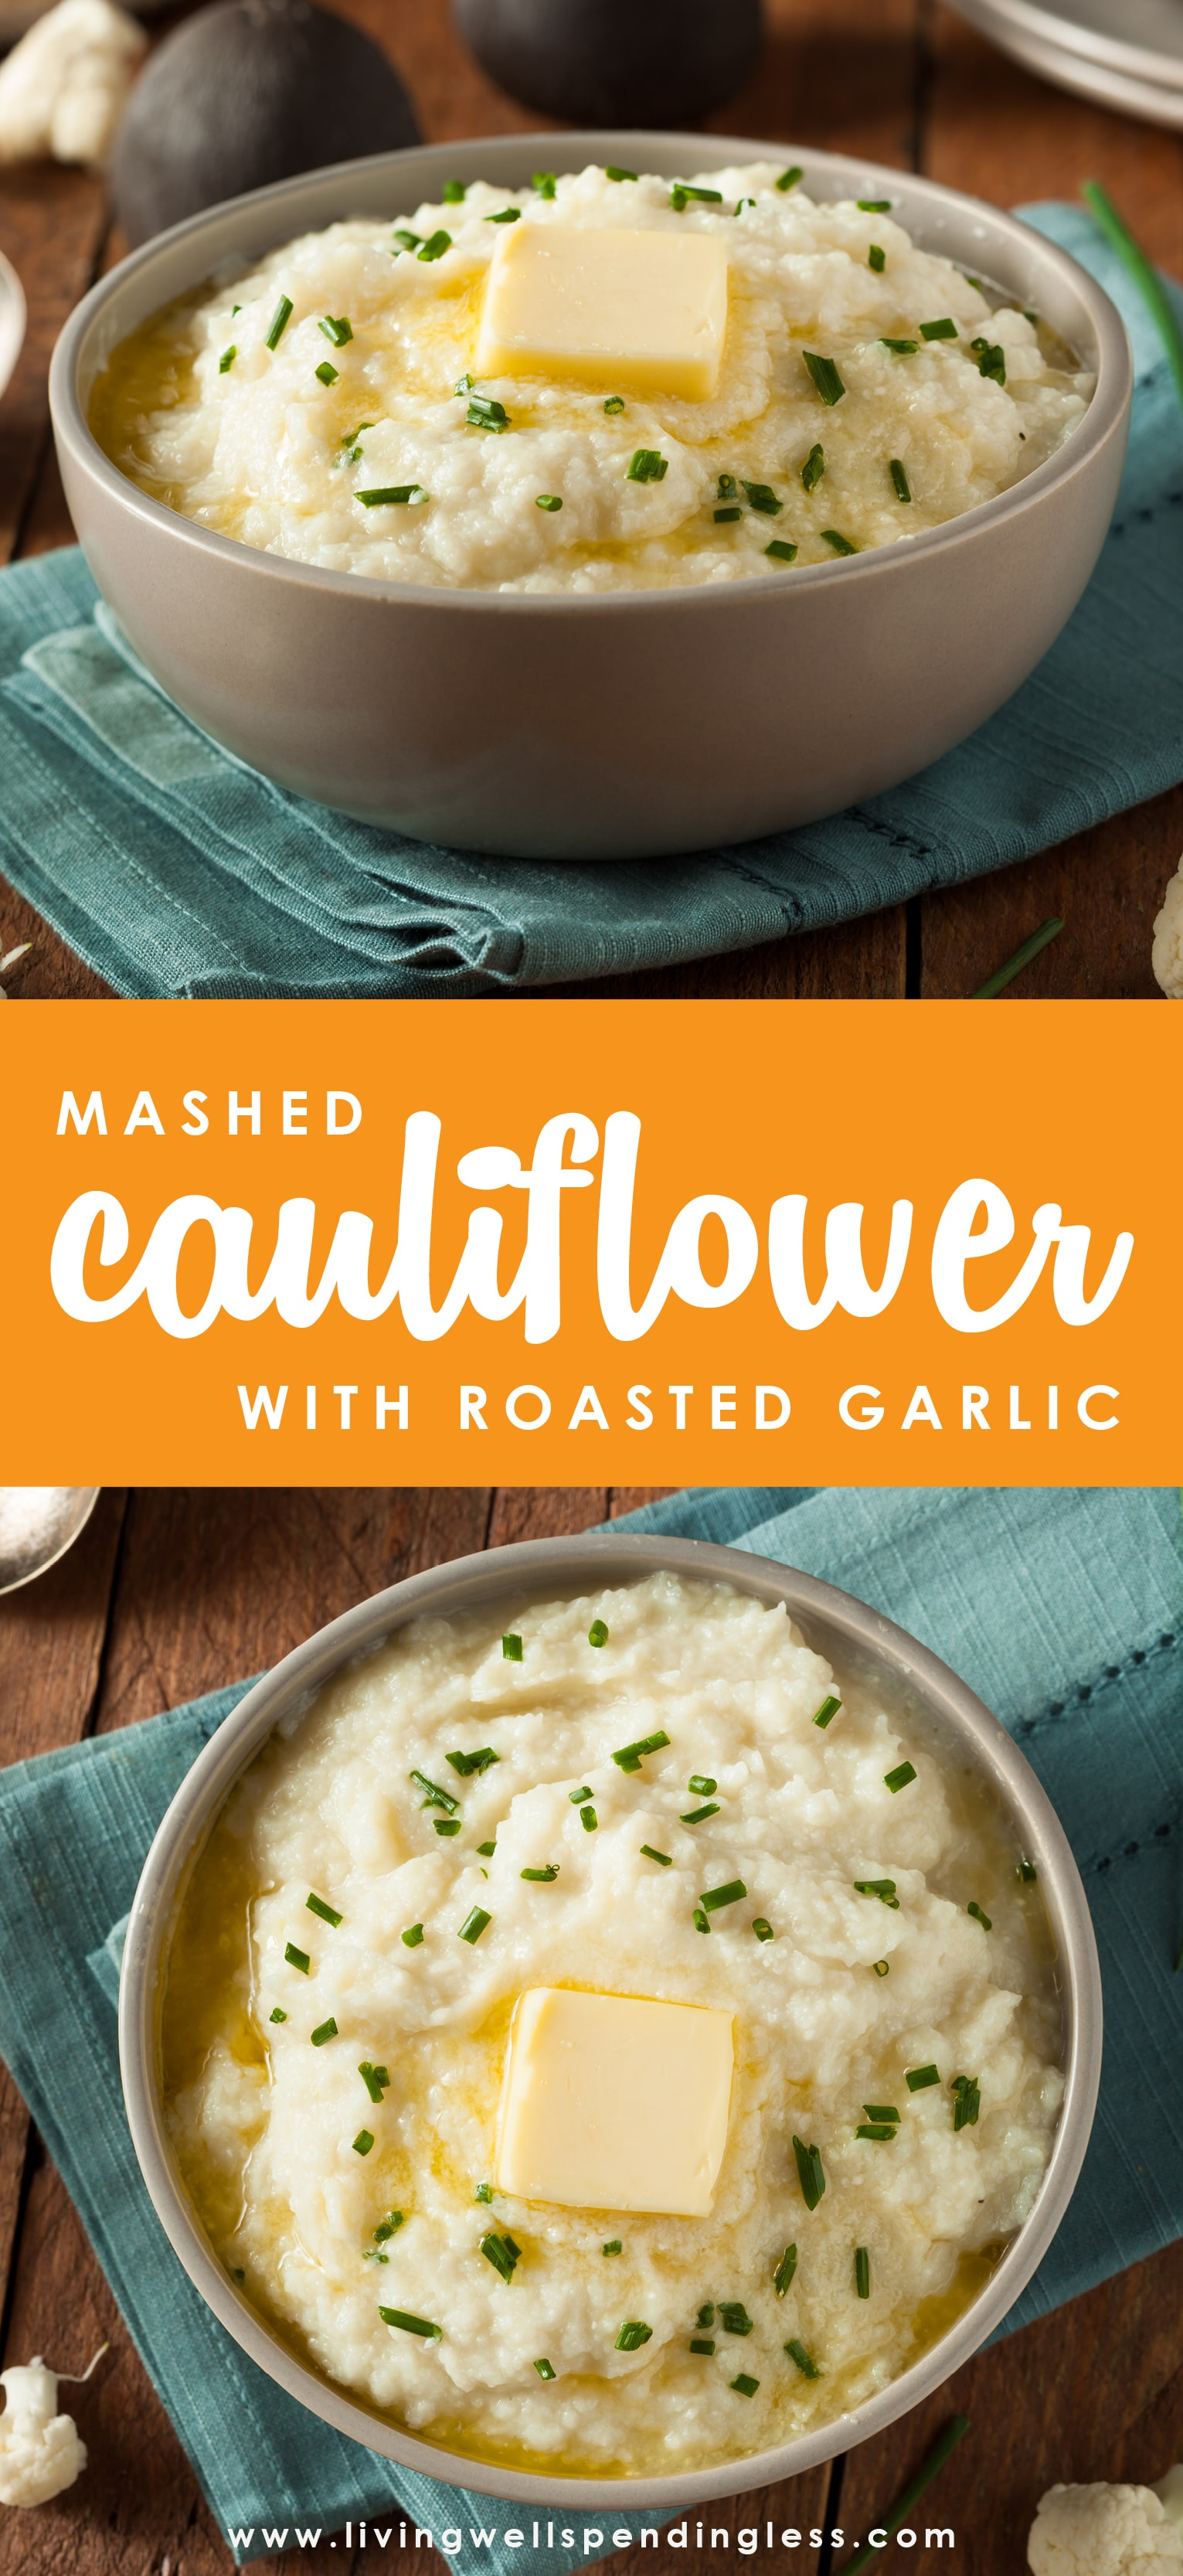 This roasted garlic mashed cauliflower recipe gives you all of the flavor with none of the guilt (and none of the carbs!) Whips up in just minutes! And it's Keto-friendly too!  Easy Mashed Cauliflower Recipe | Keto Mashed Cauliflower | Roasted Garlic Mashed Cauliflower Recipe | Easy Roasted Garlic Mashed Cauliflower | Best Roasted Garlic Mashed Cauliflower